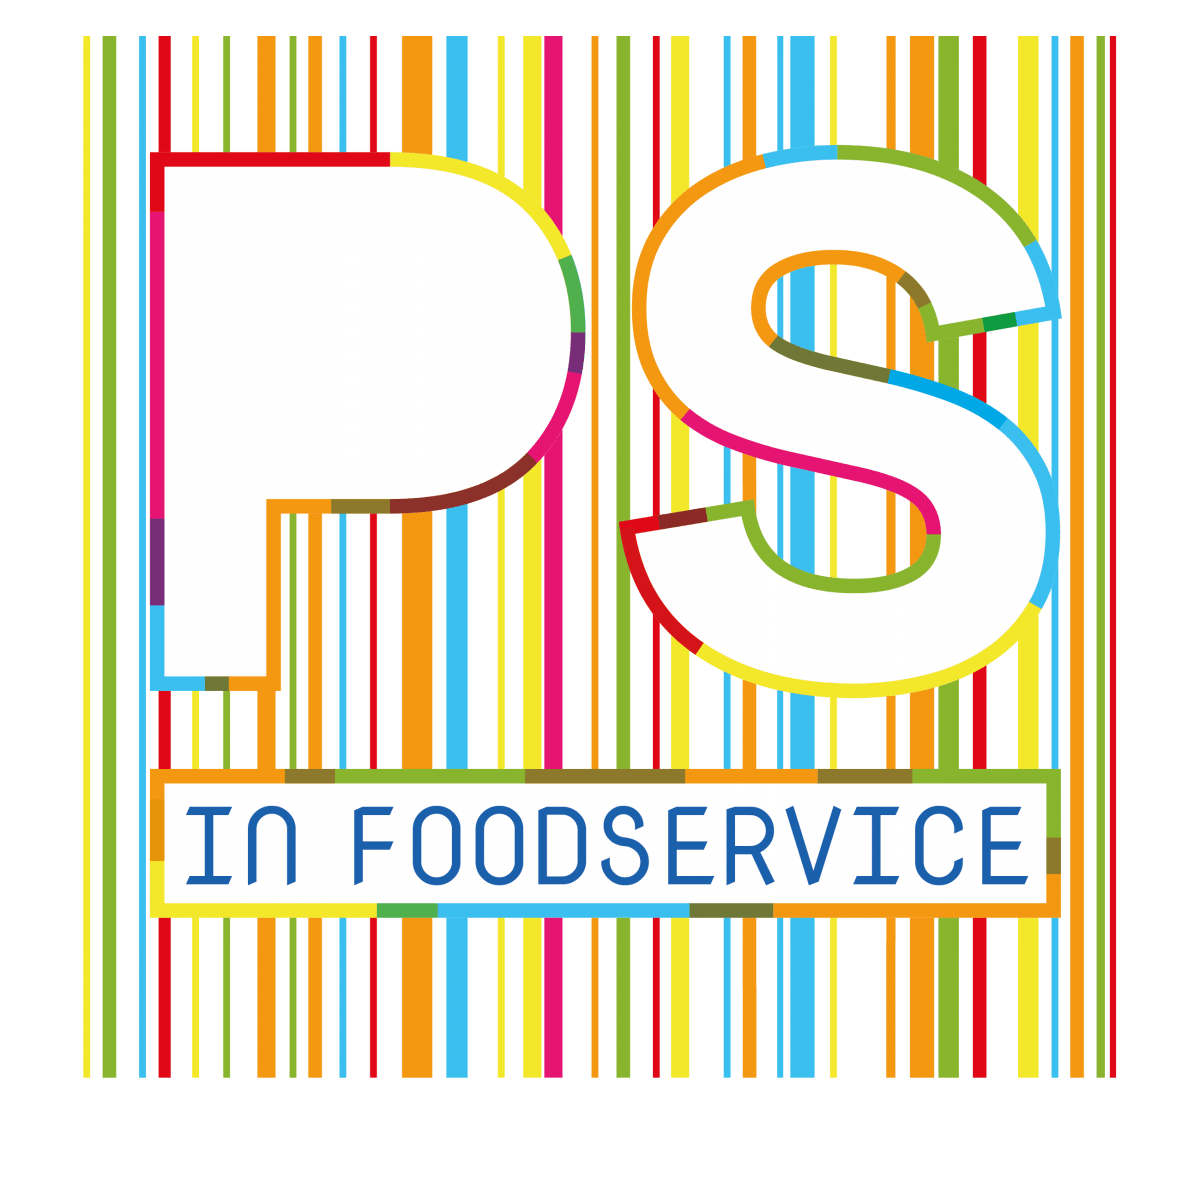 logo ps in foodservice